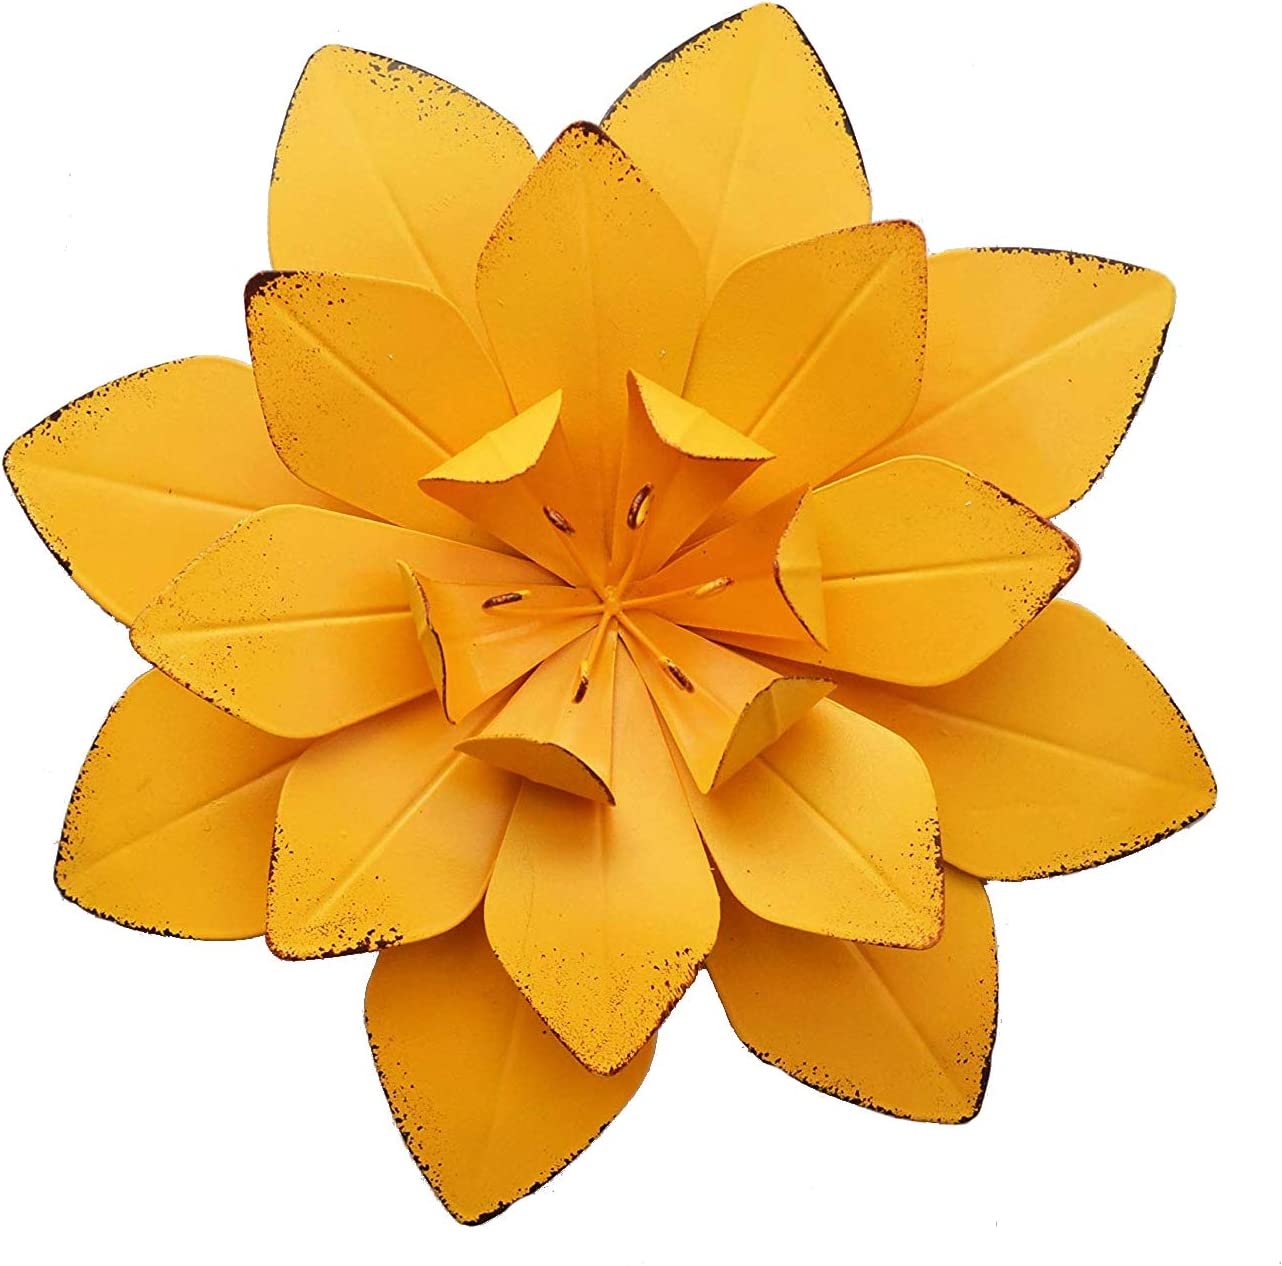 GIFTME 5 Yellow Metal Layered Flower Wall Decor for Bathroom Livingroom Garden Indoor or Outdoor Wall Sculptures(10X2 inch)